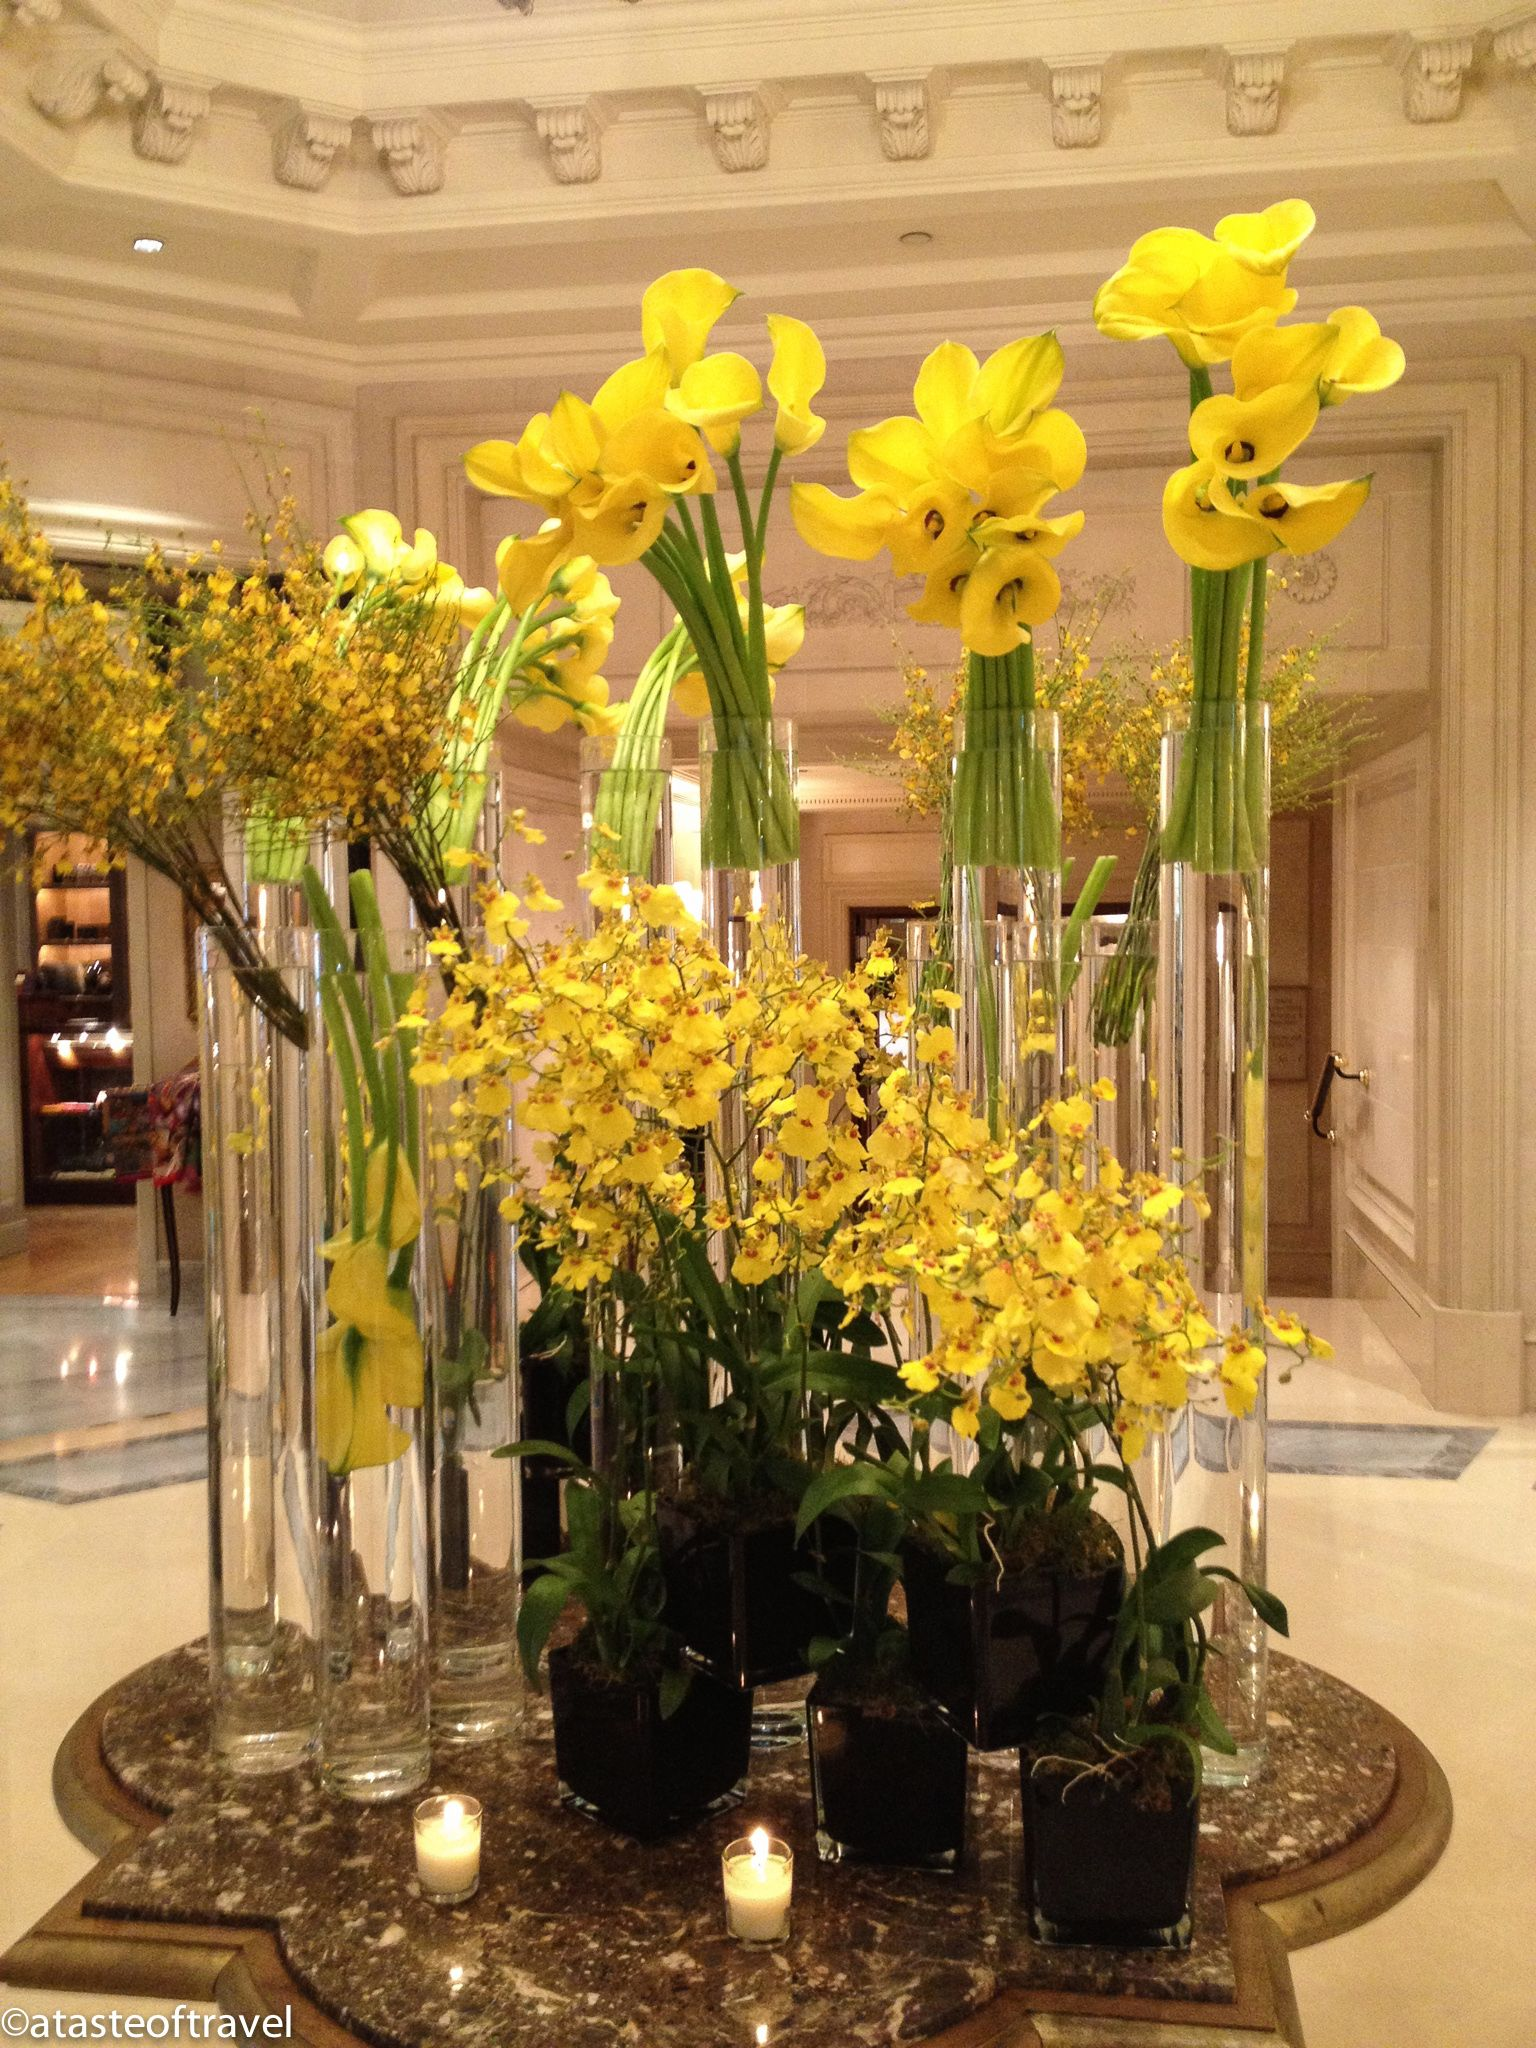 Spring Flowers at the Hotel V in Paris Hotel